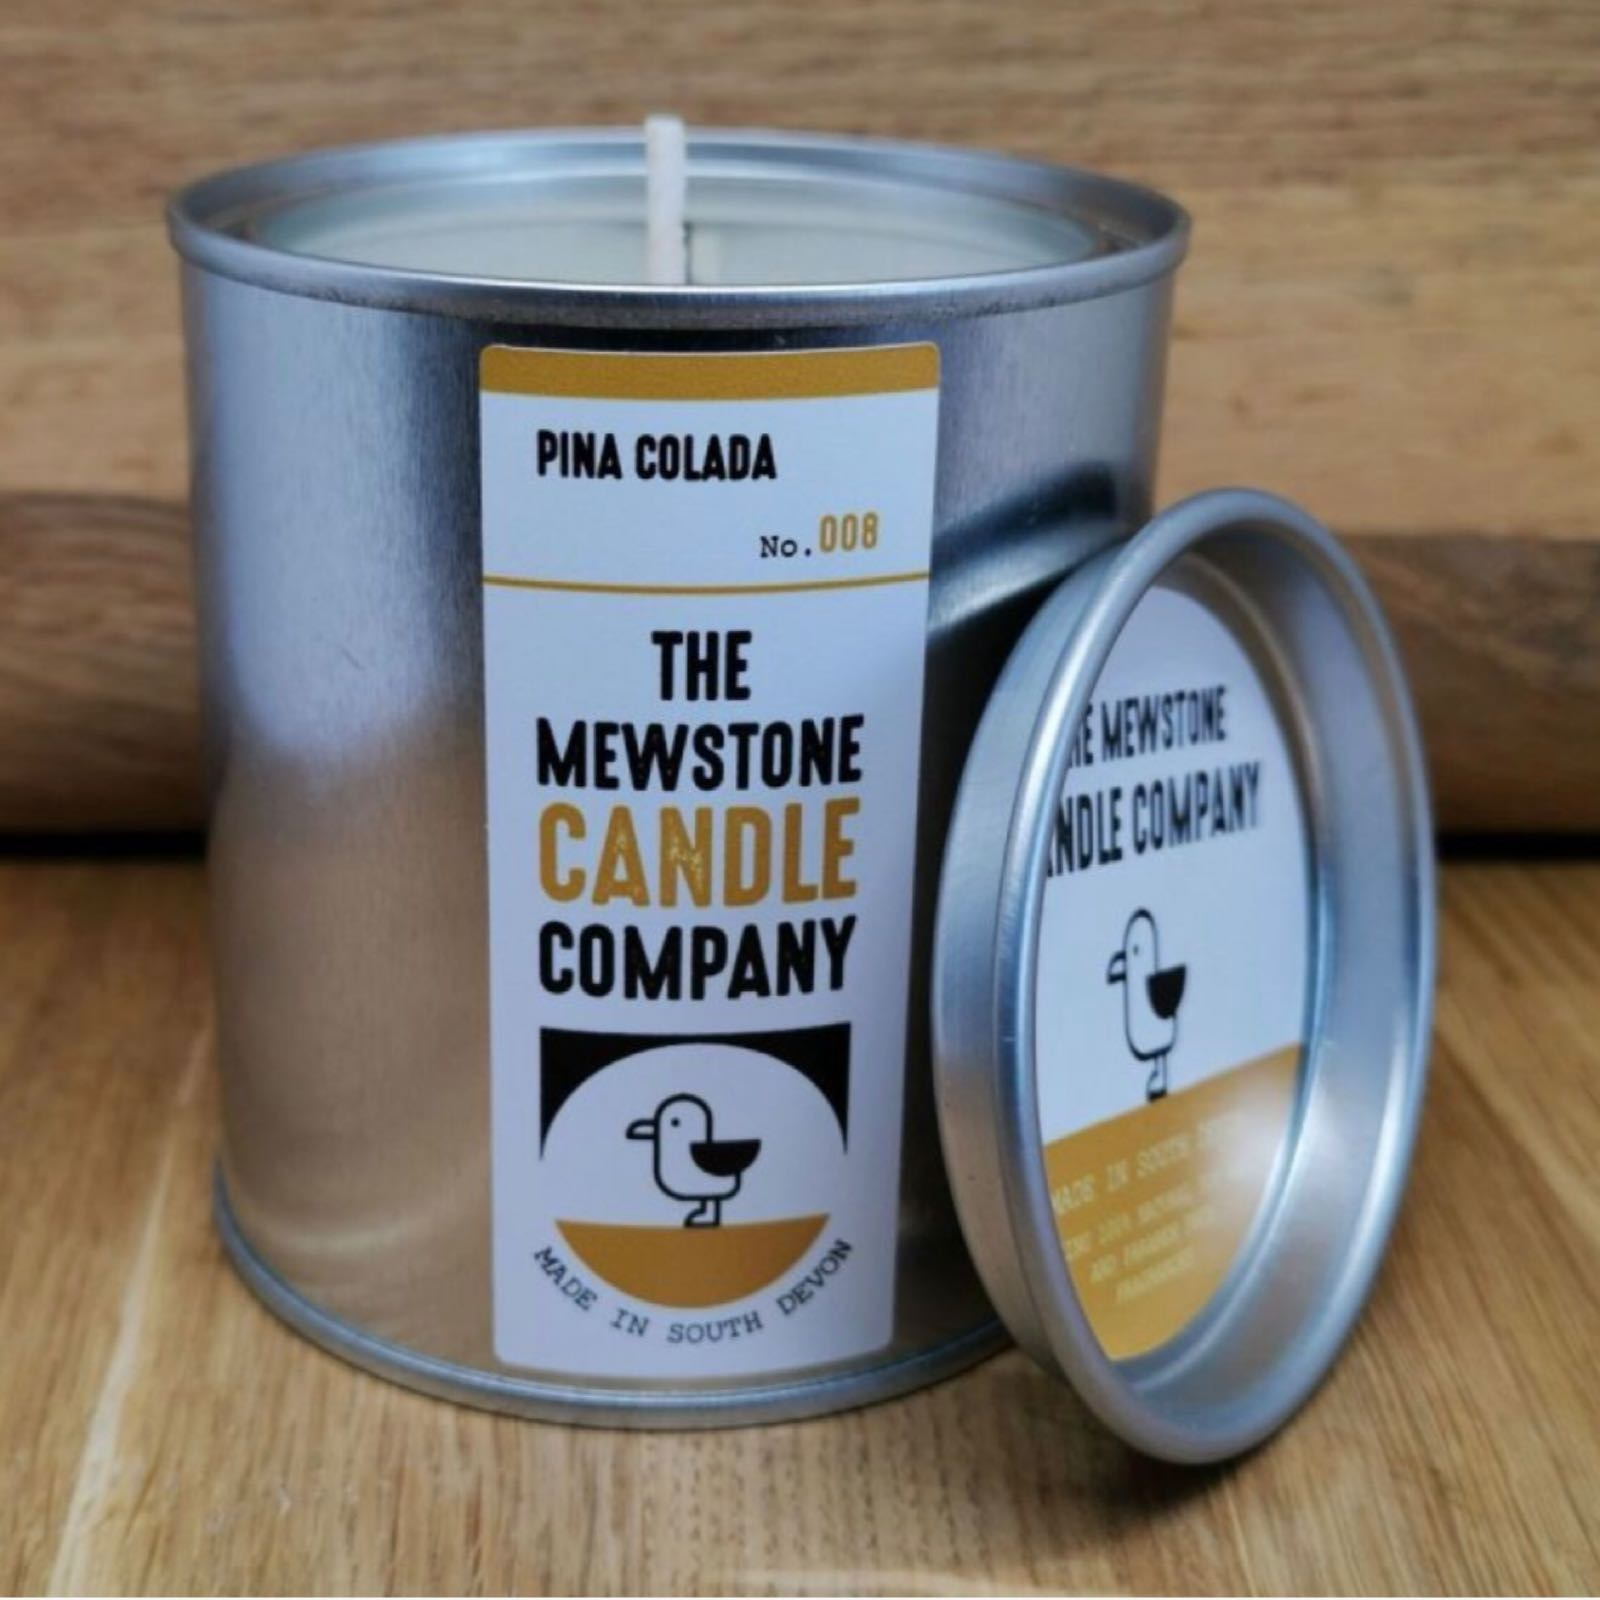 'Pina Colada' Mewstone Paint Tin Candle (Was £12.50)